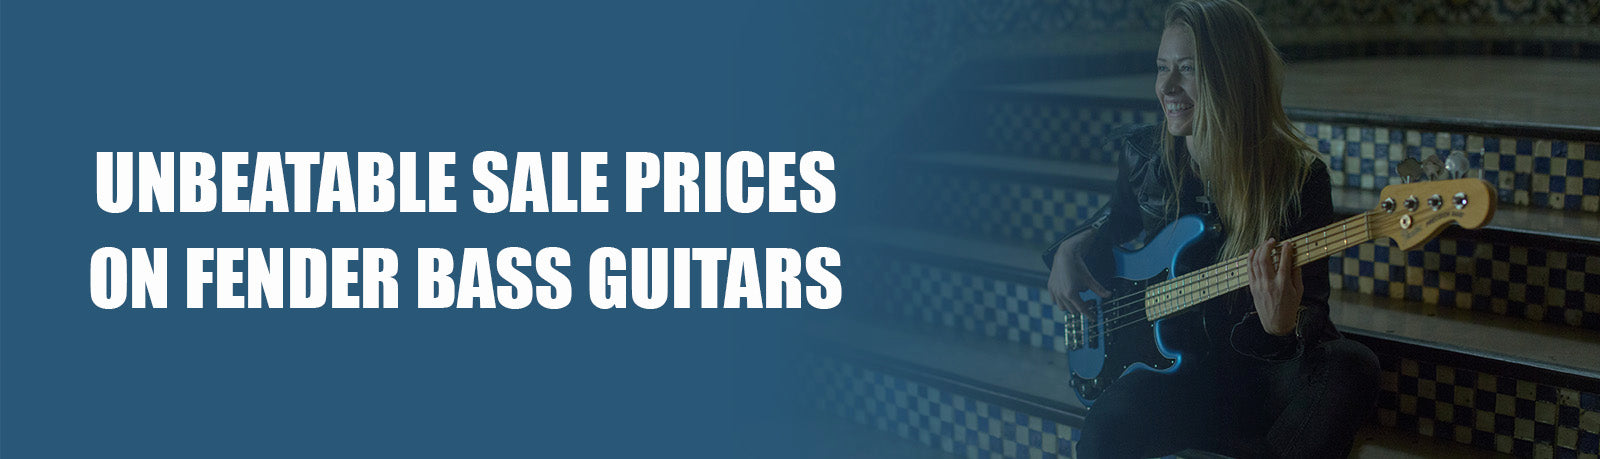 Fender Bass Guitars On Sale - Fender Jazz, Fender Precision